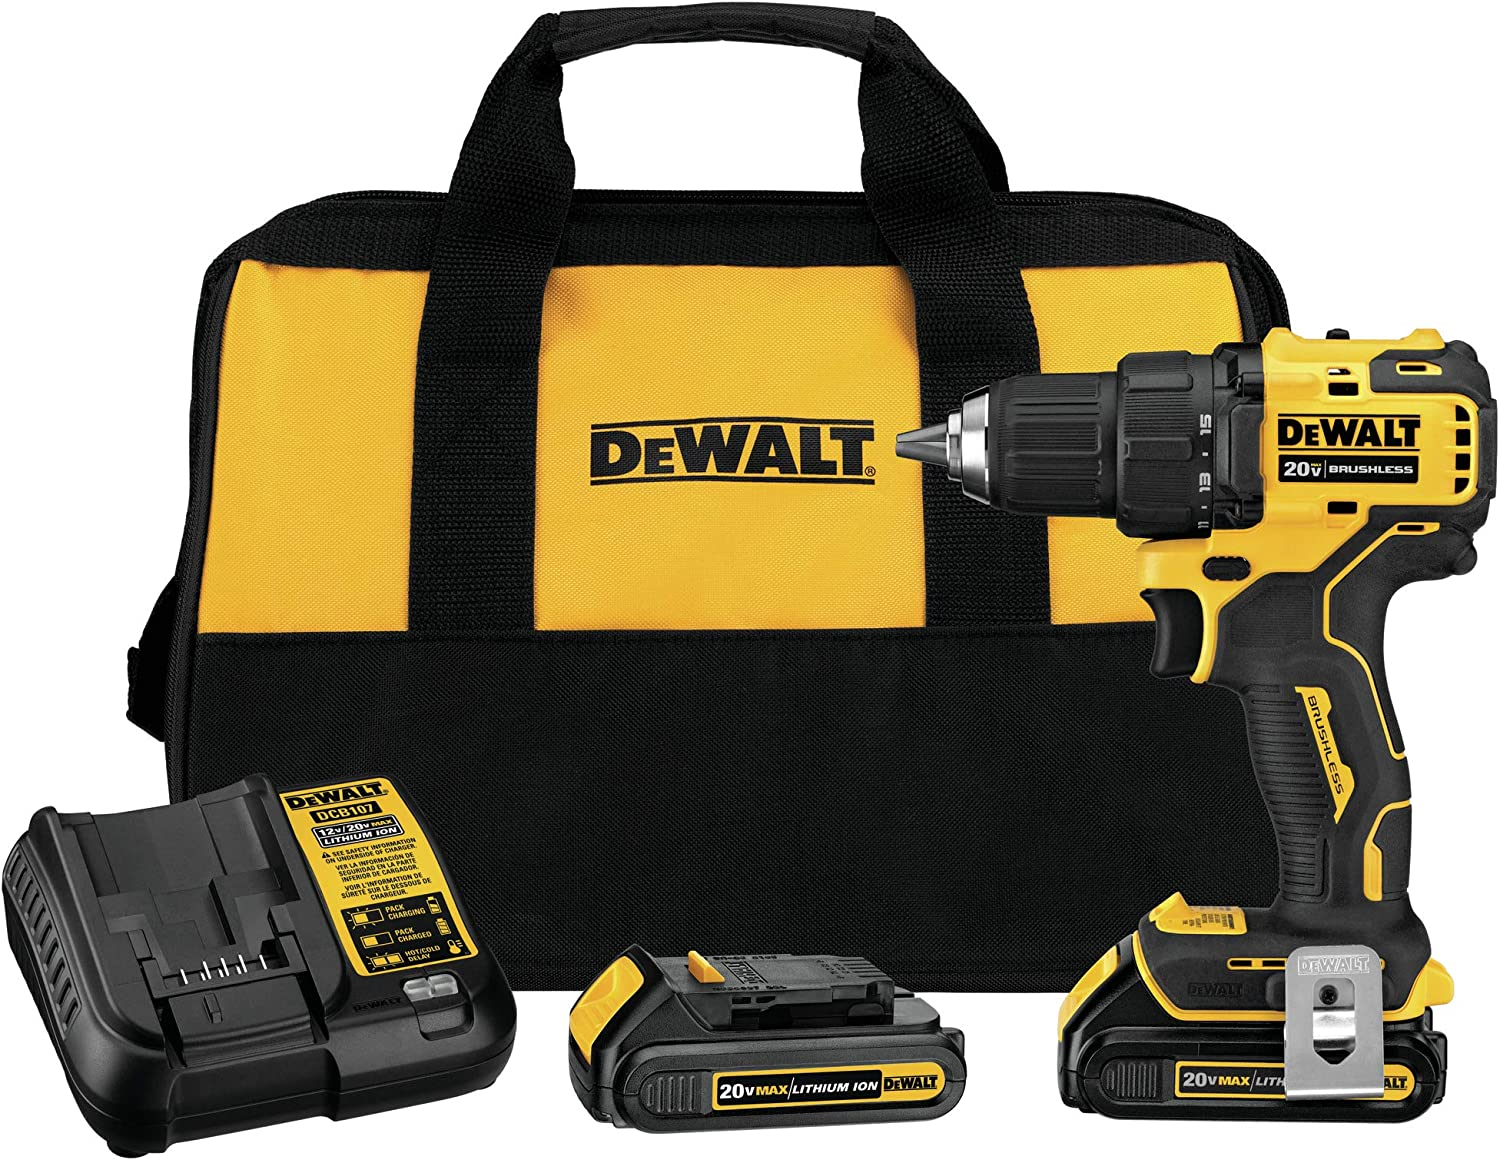 DEWALT DCD708C2 Atomic 20V Max Lithium-Ion Brushless Cordless Compact 1 2 In. Drill Driver Kit